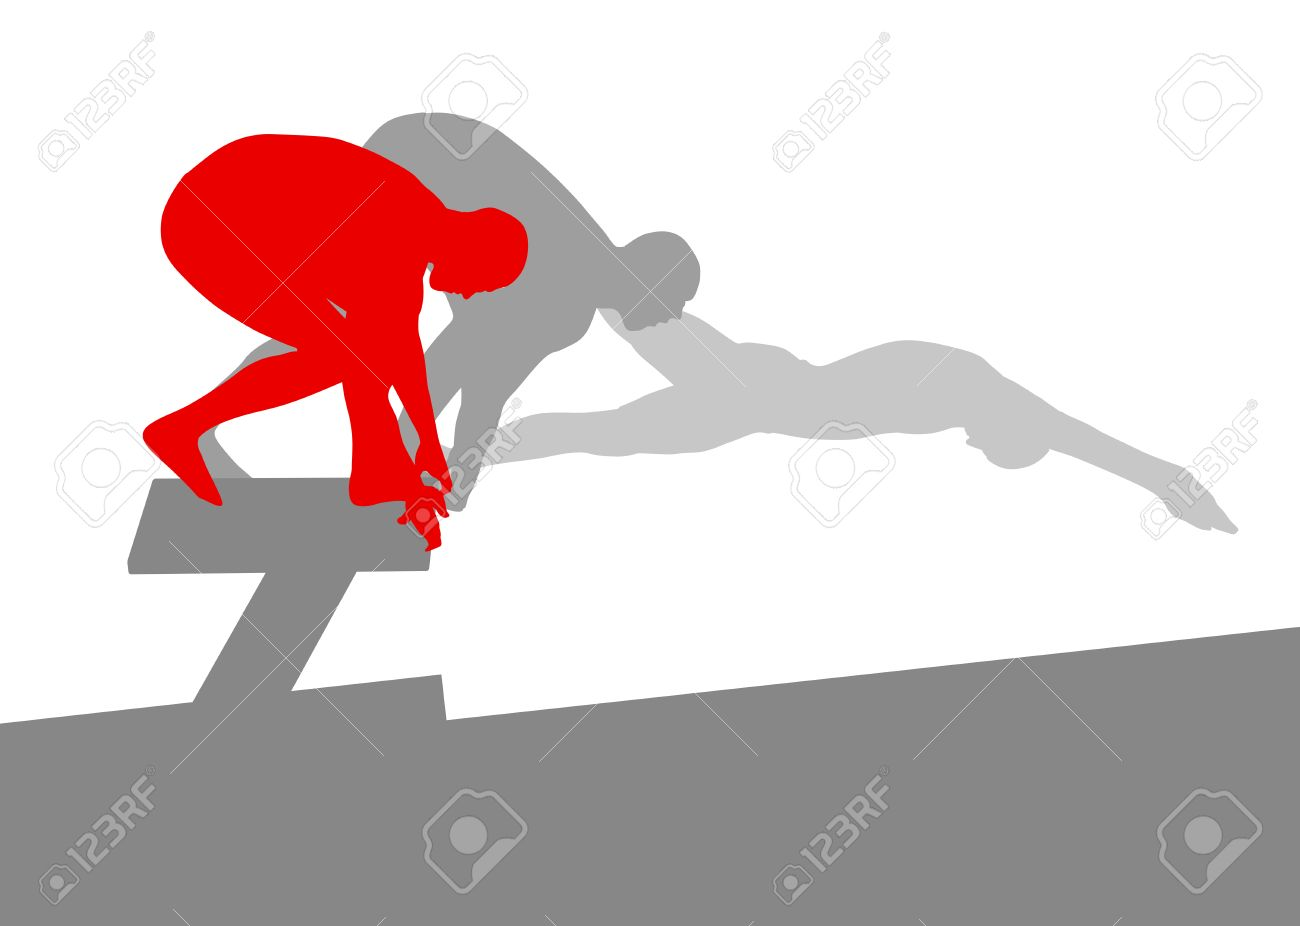 Swimmer position for jump on starting block vector background concept made of stripes - 40572321